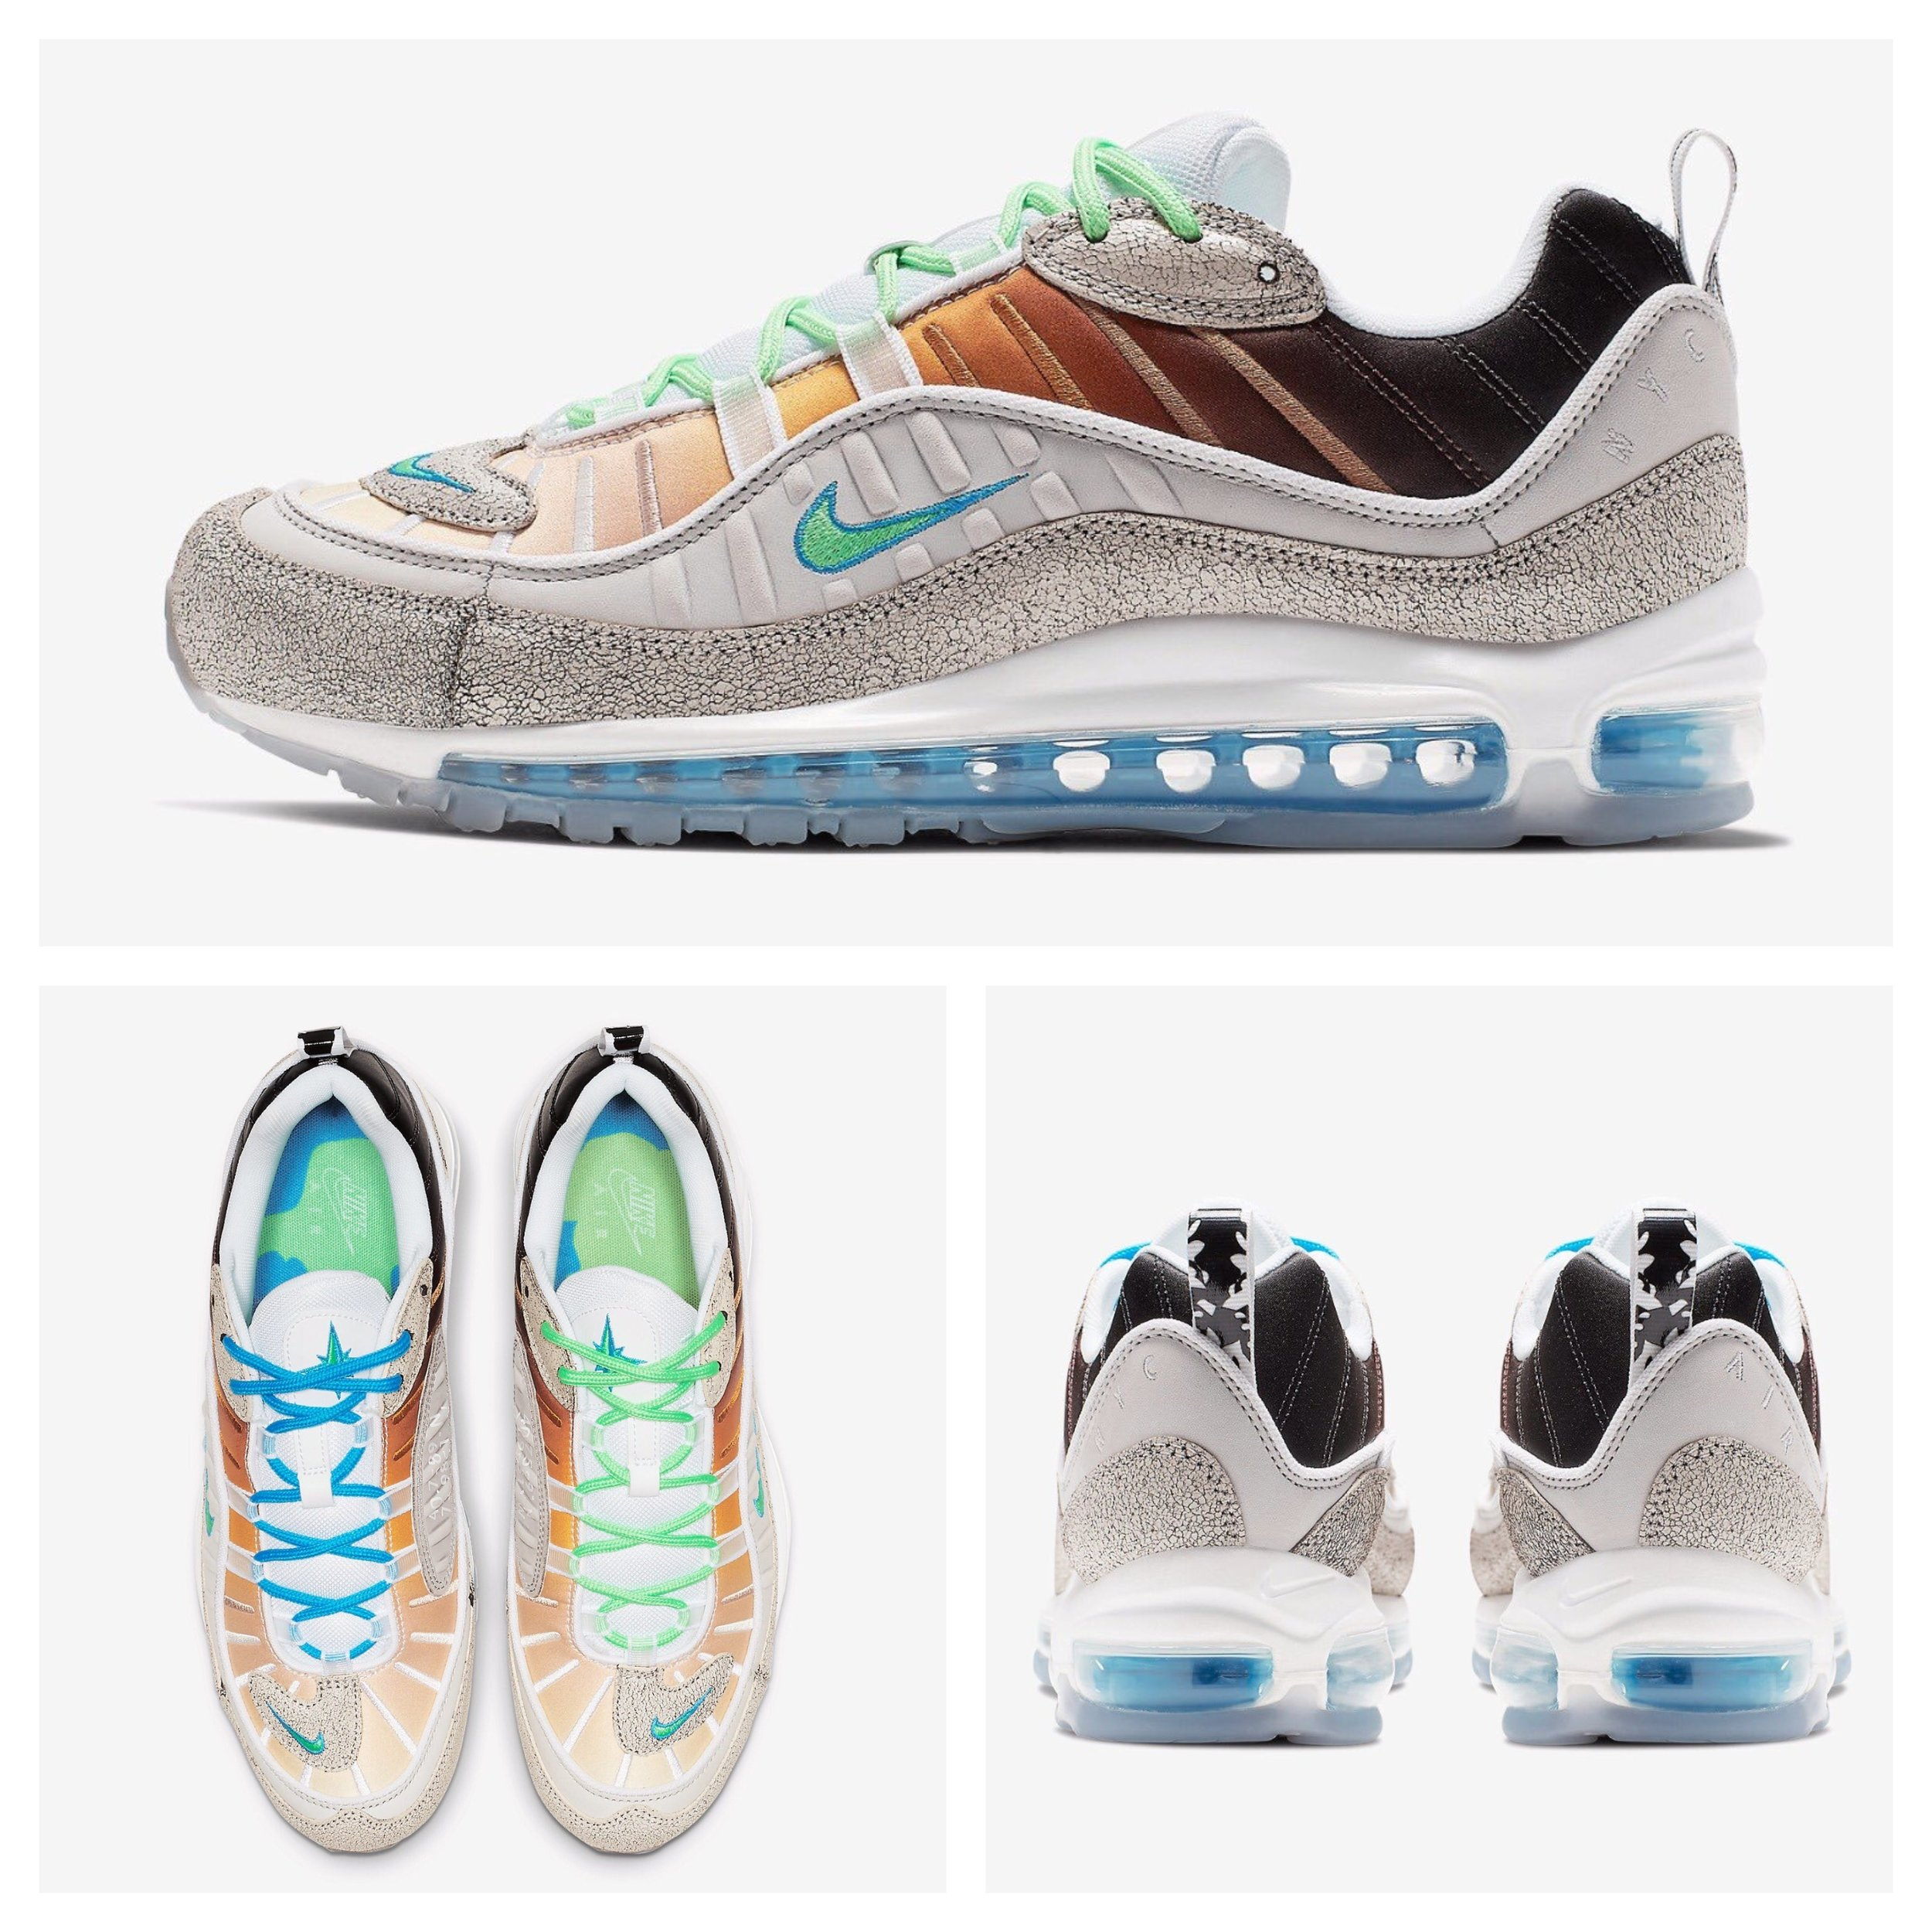 76156d8ffb Now Available: Nike Air Max 98